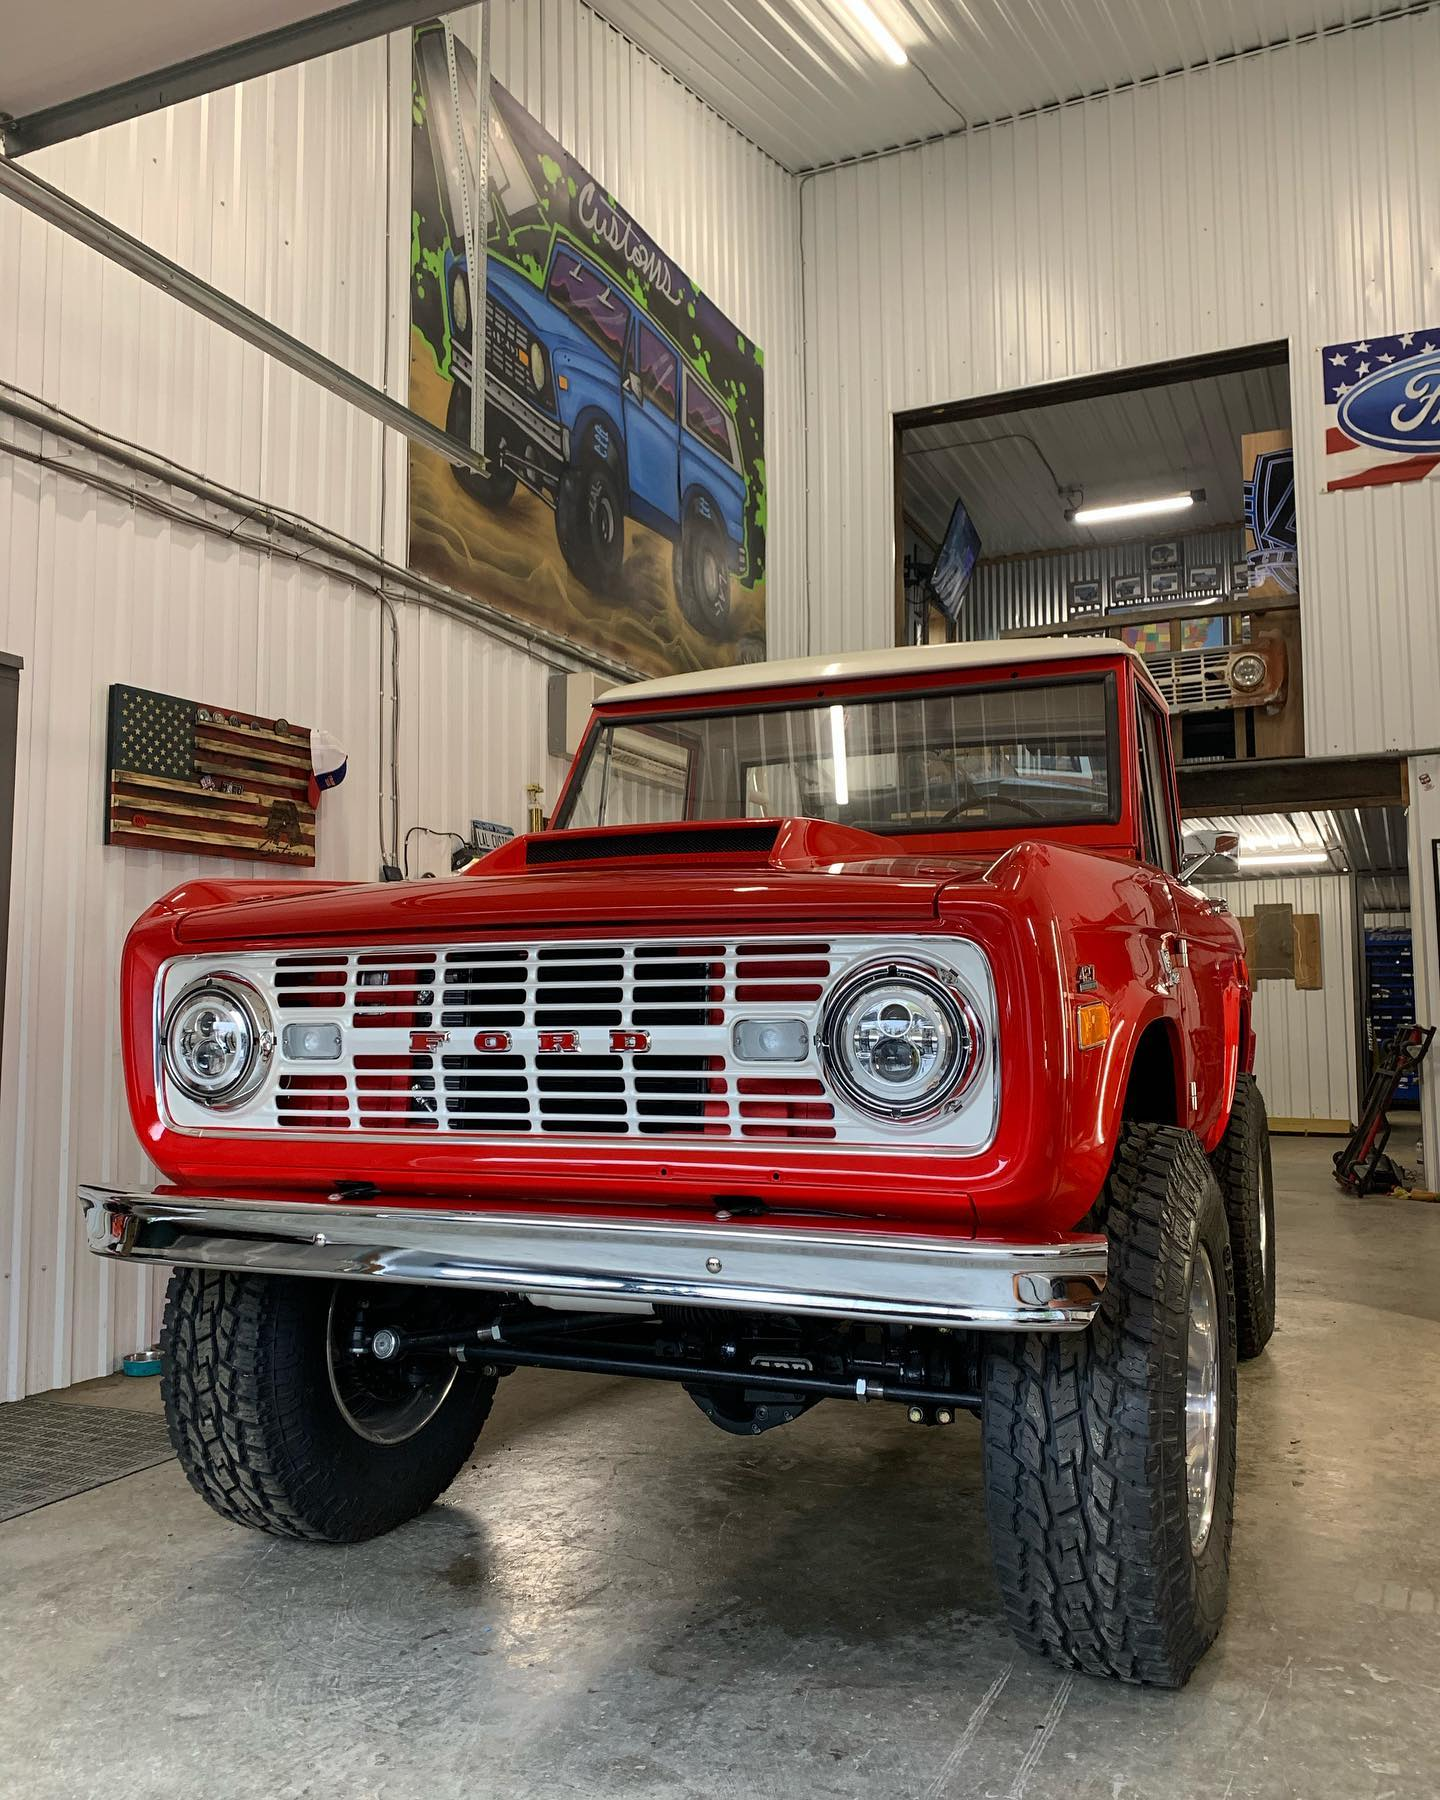 LAL-Customs-Ford-Bronco-Restoration-T-Man-Build-8